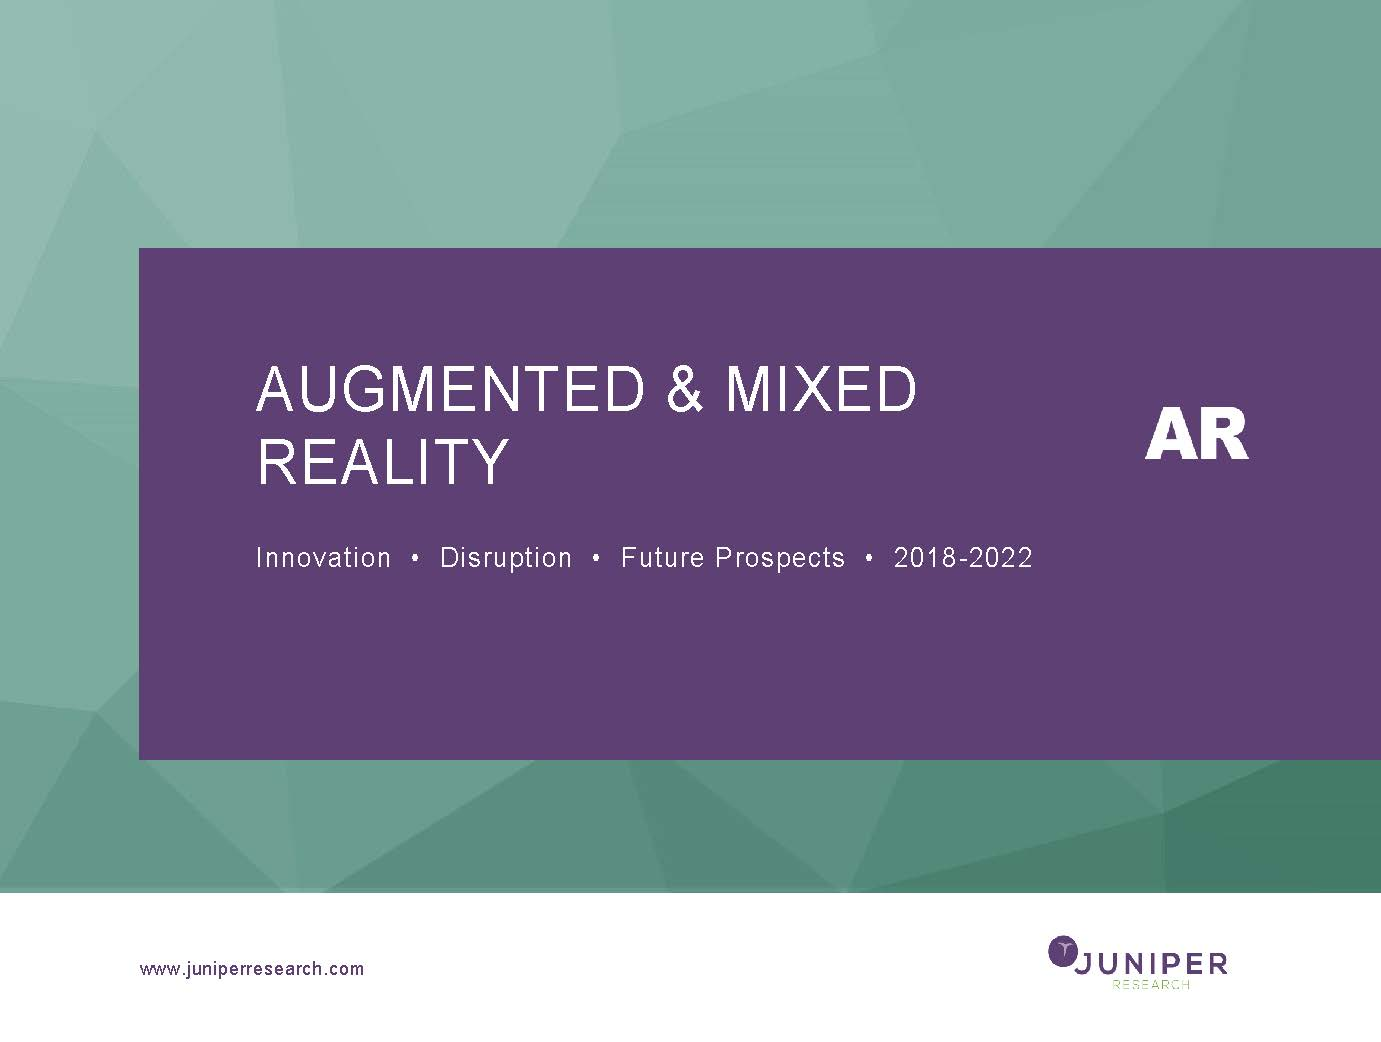 Augmented & Mixed Reality: Innovation, Disruption & Future Prospects 2018-2022